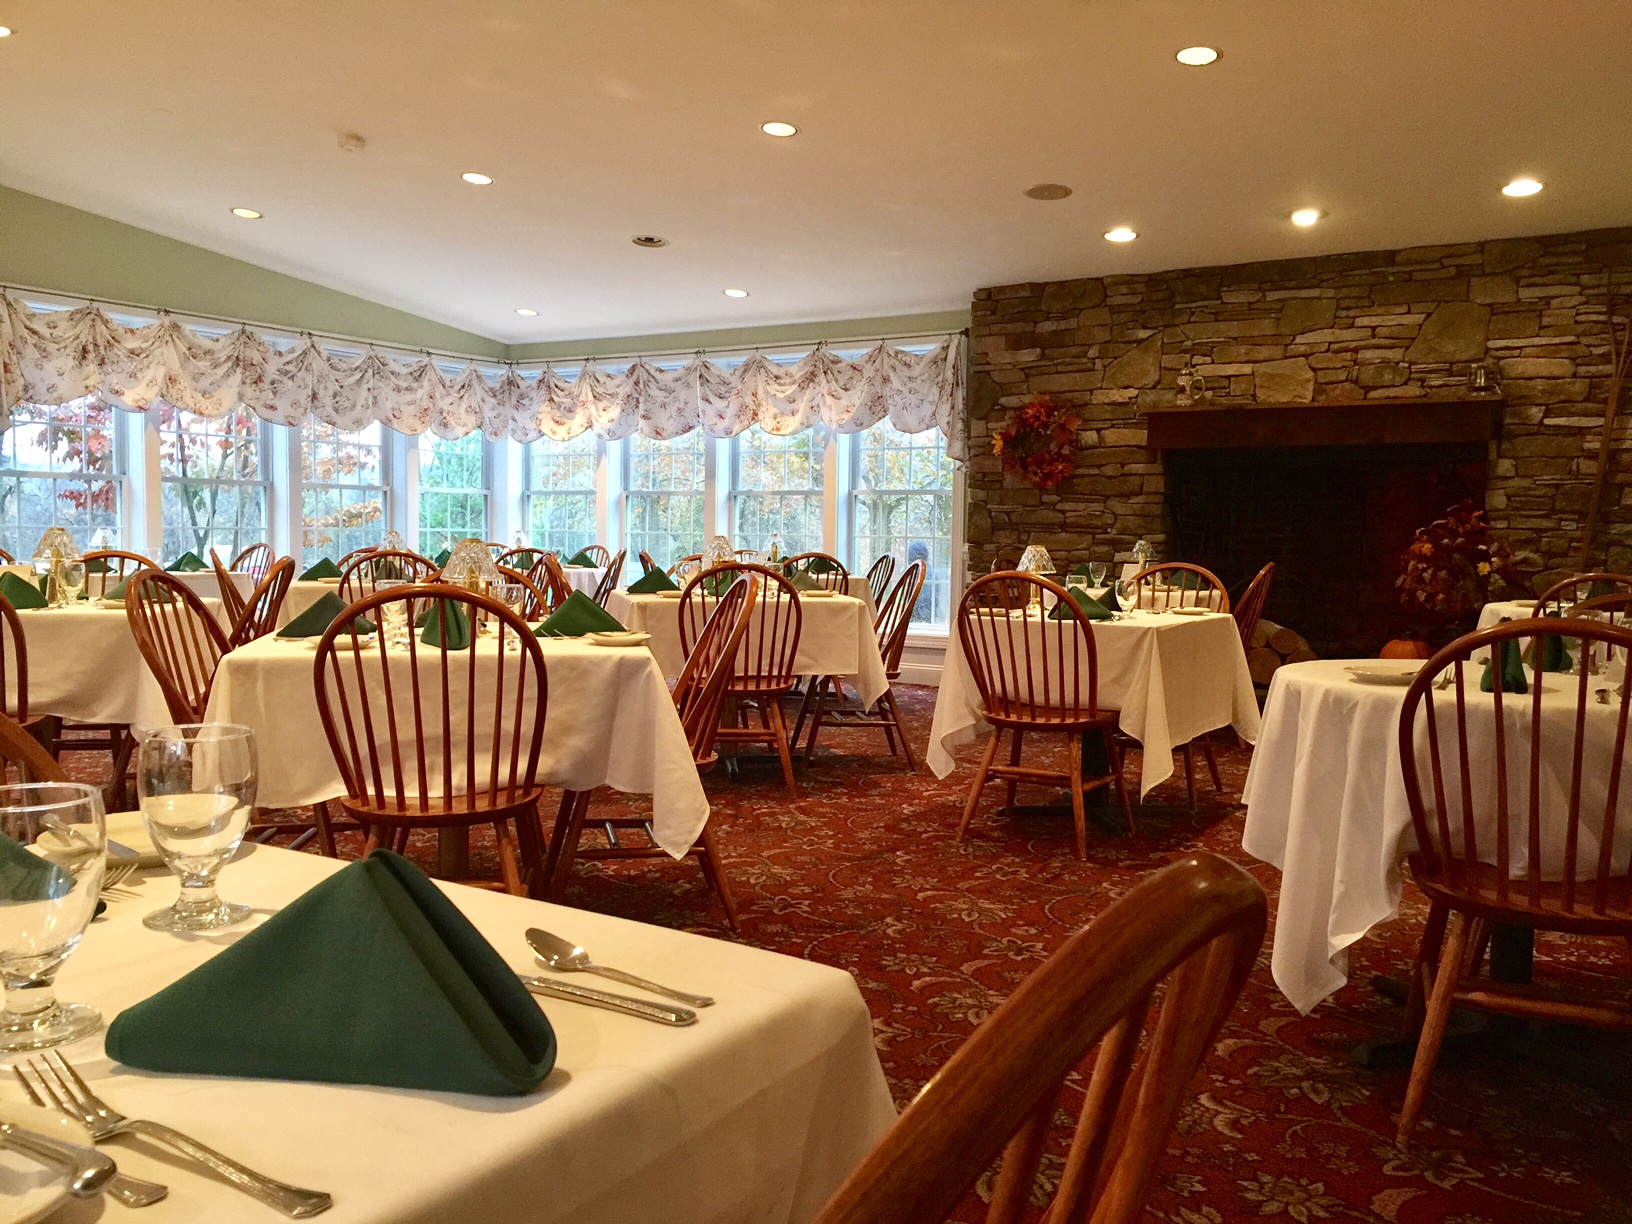 Welcome rising sun inn main dining room with meadow and fireplace viewsg kristyandbryce Gallery